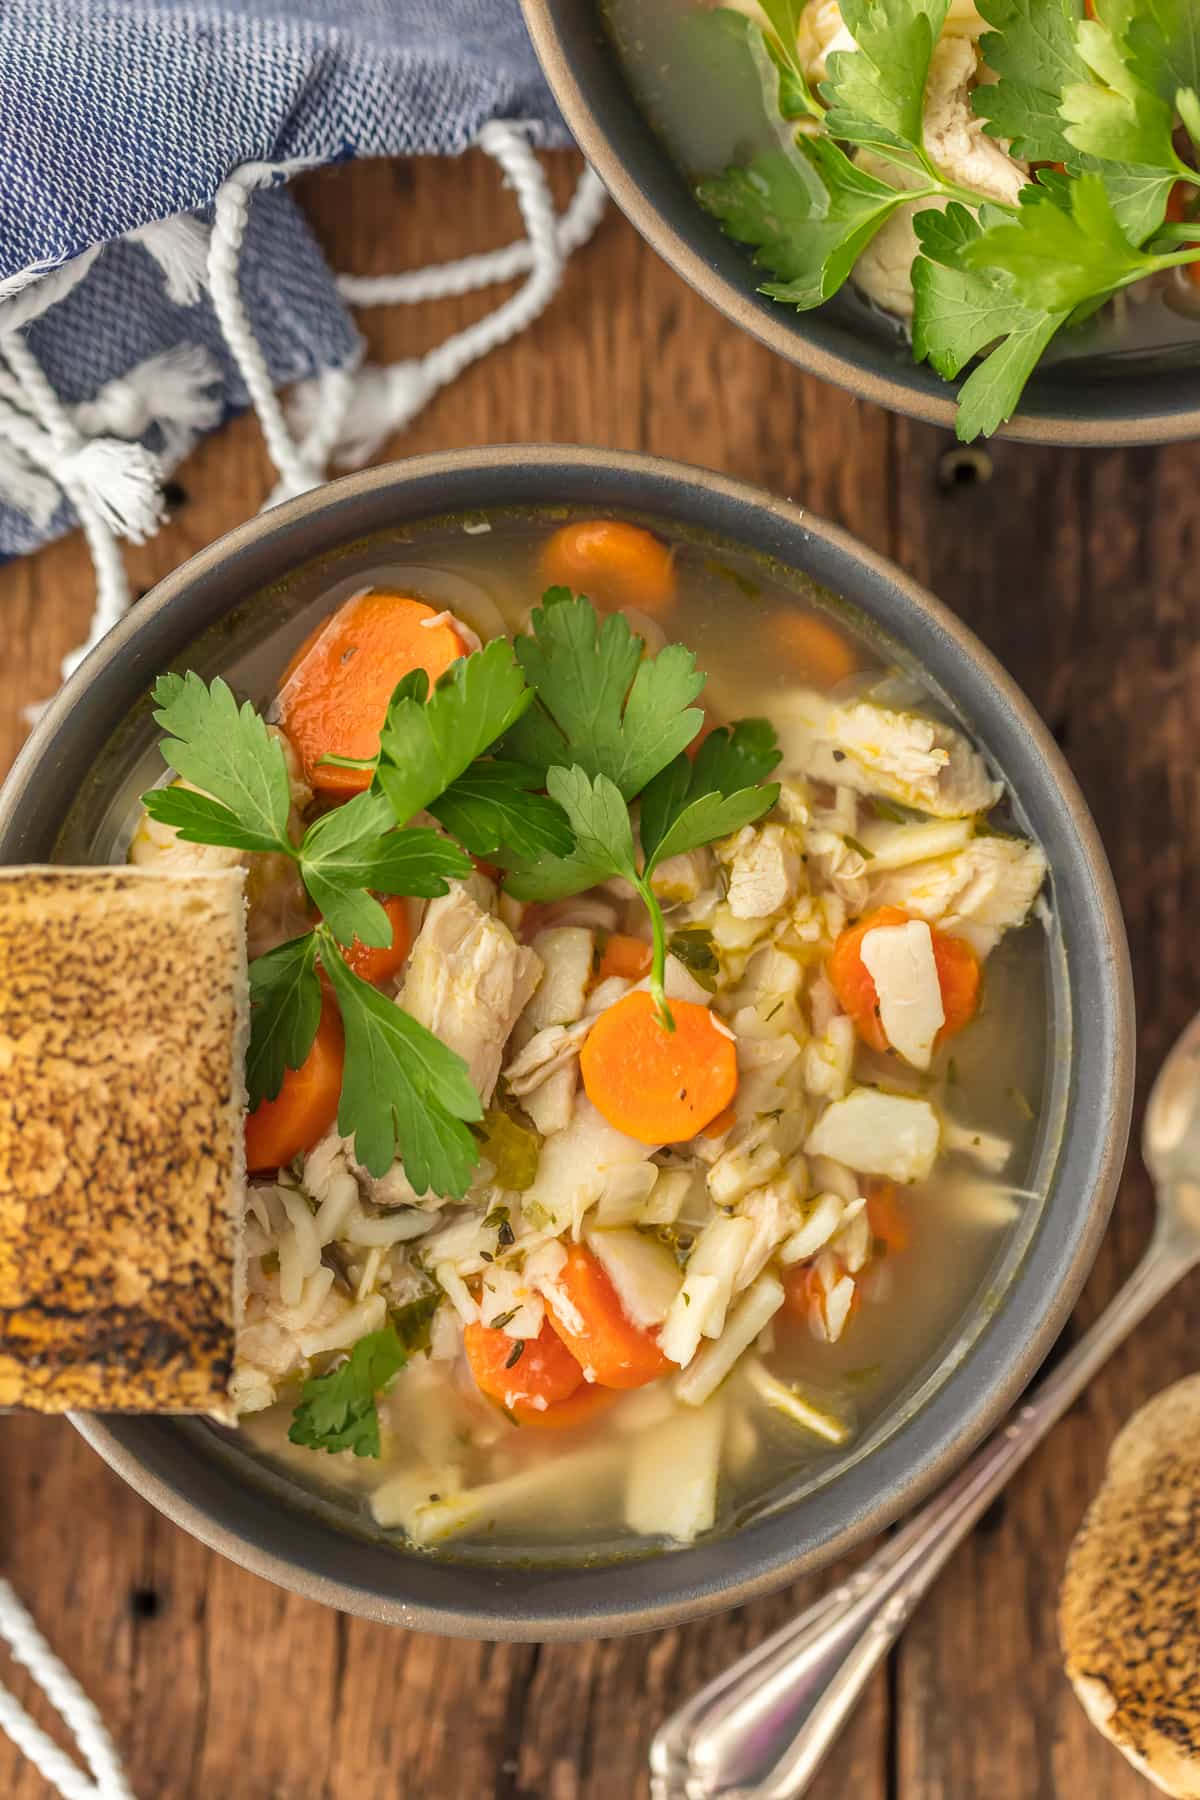 A bowl of chicken noodle soup with carrots, parsley, and more